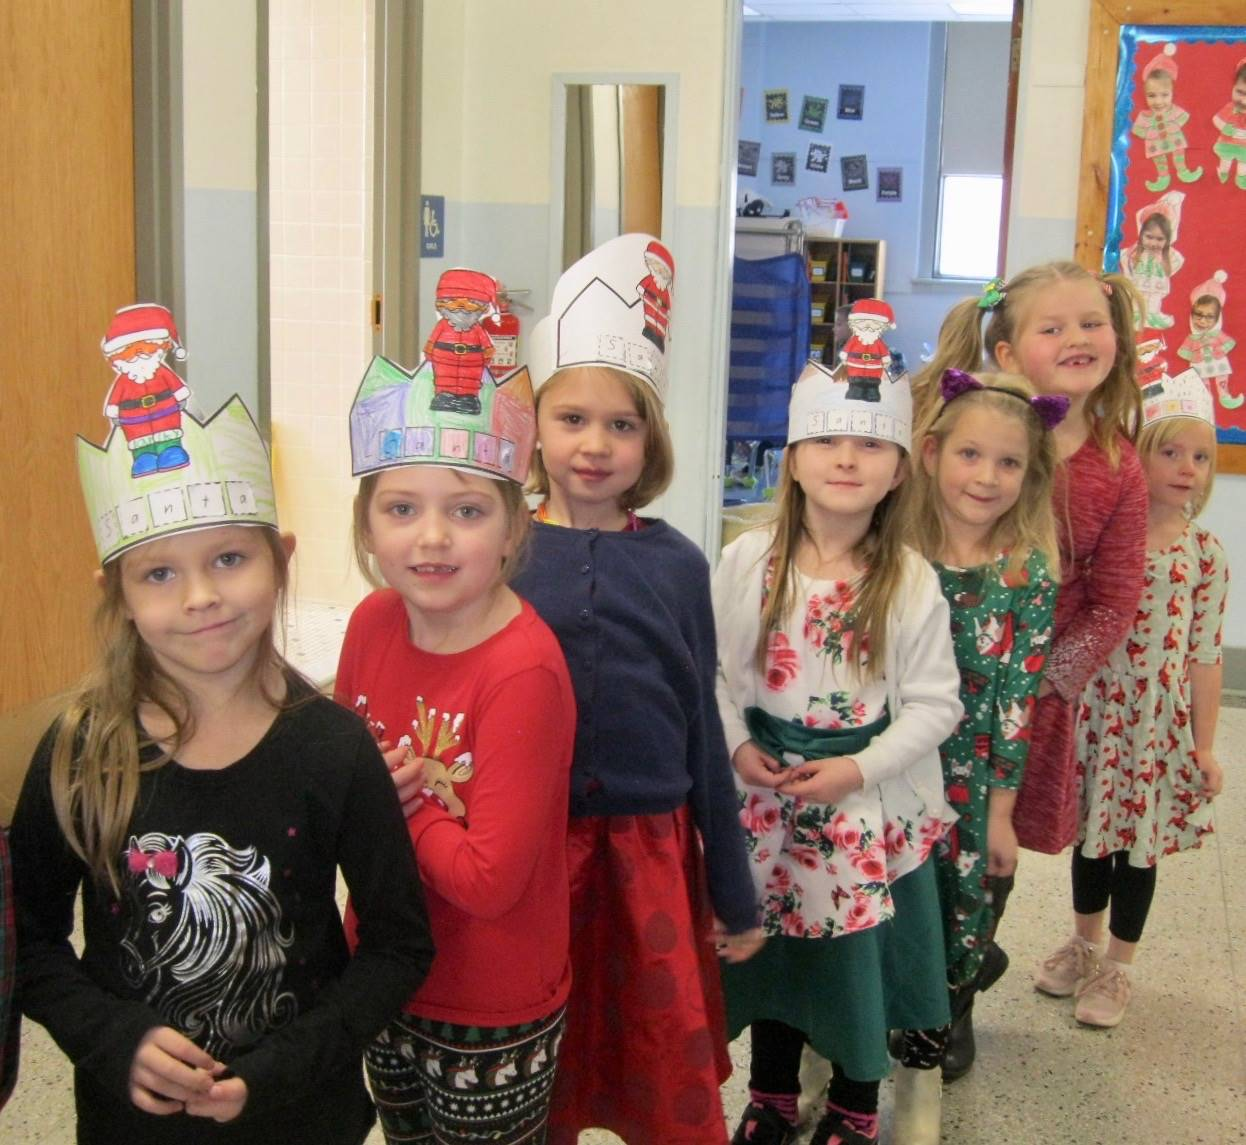 6 students in holiday hats.